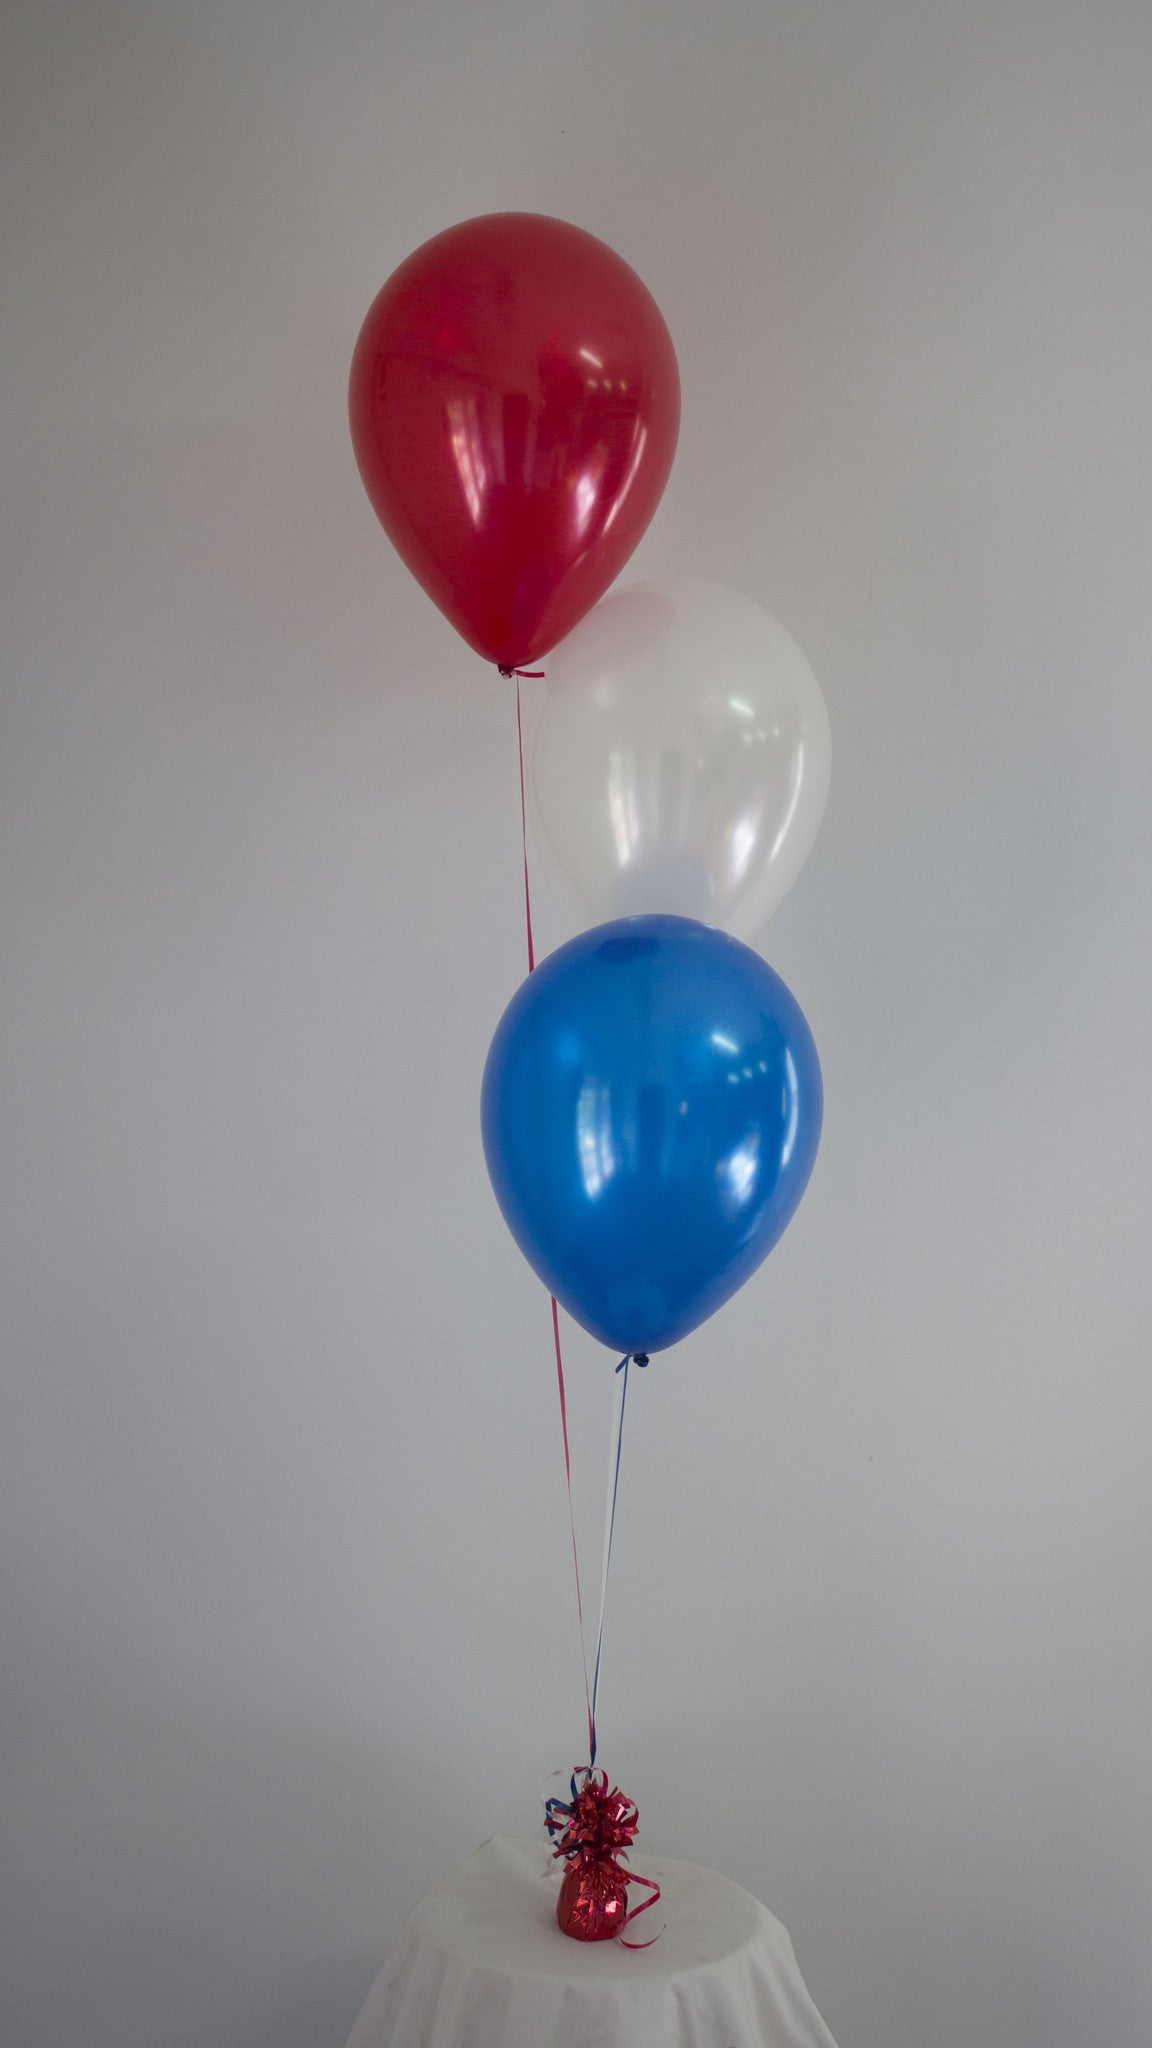 Cluster of 3 Balloons